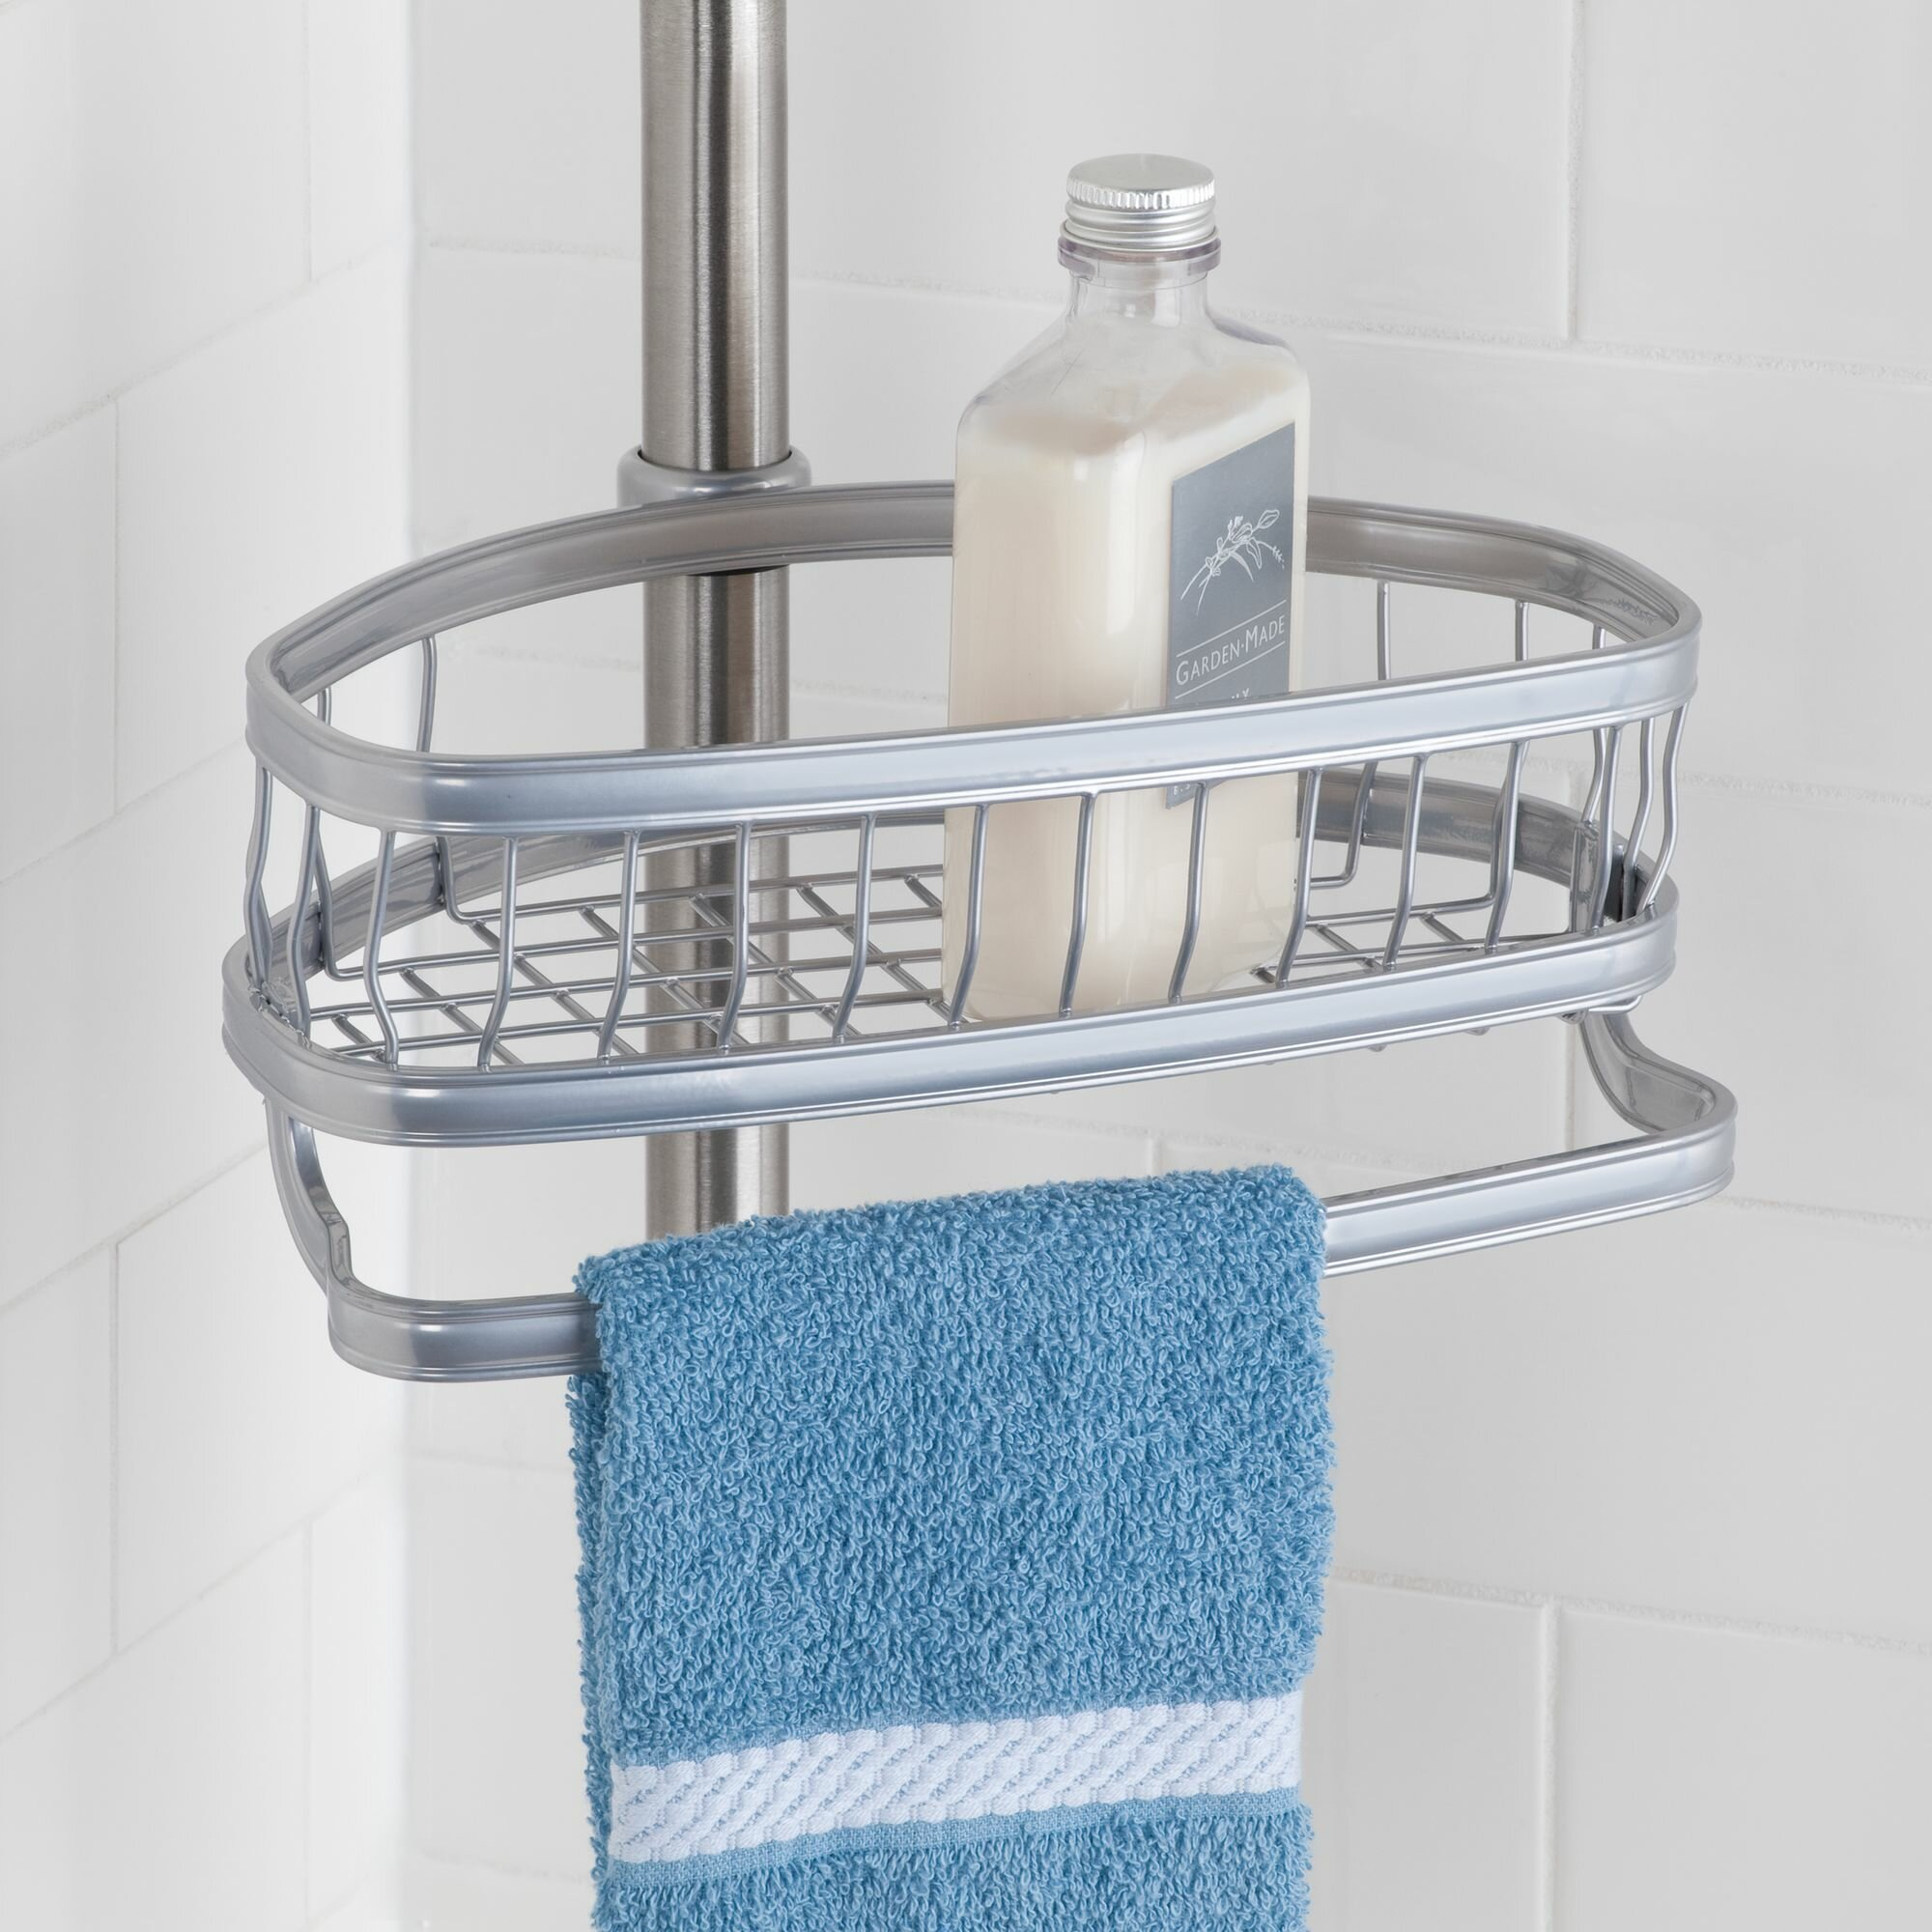 Attractive Bathtub Shower Caddy Model - Bathtub Ideas - dilata.info